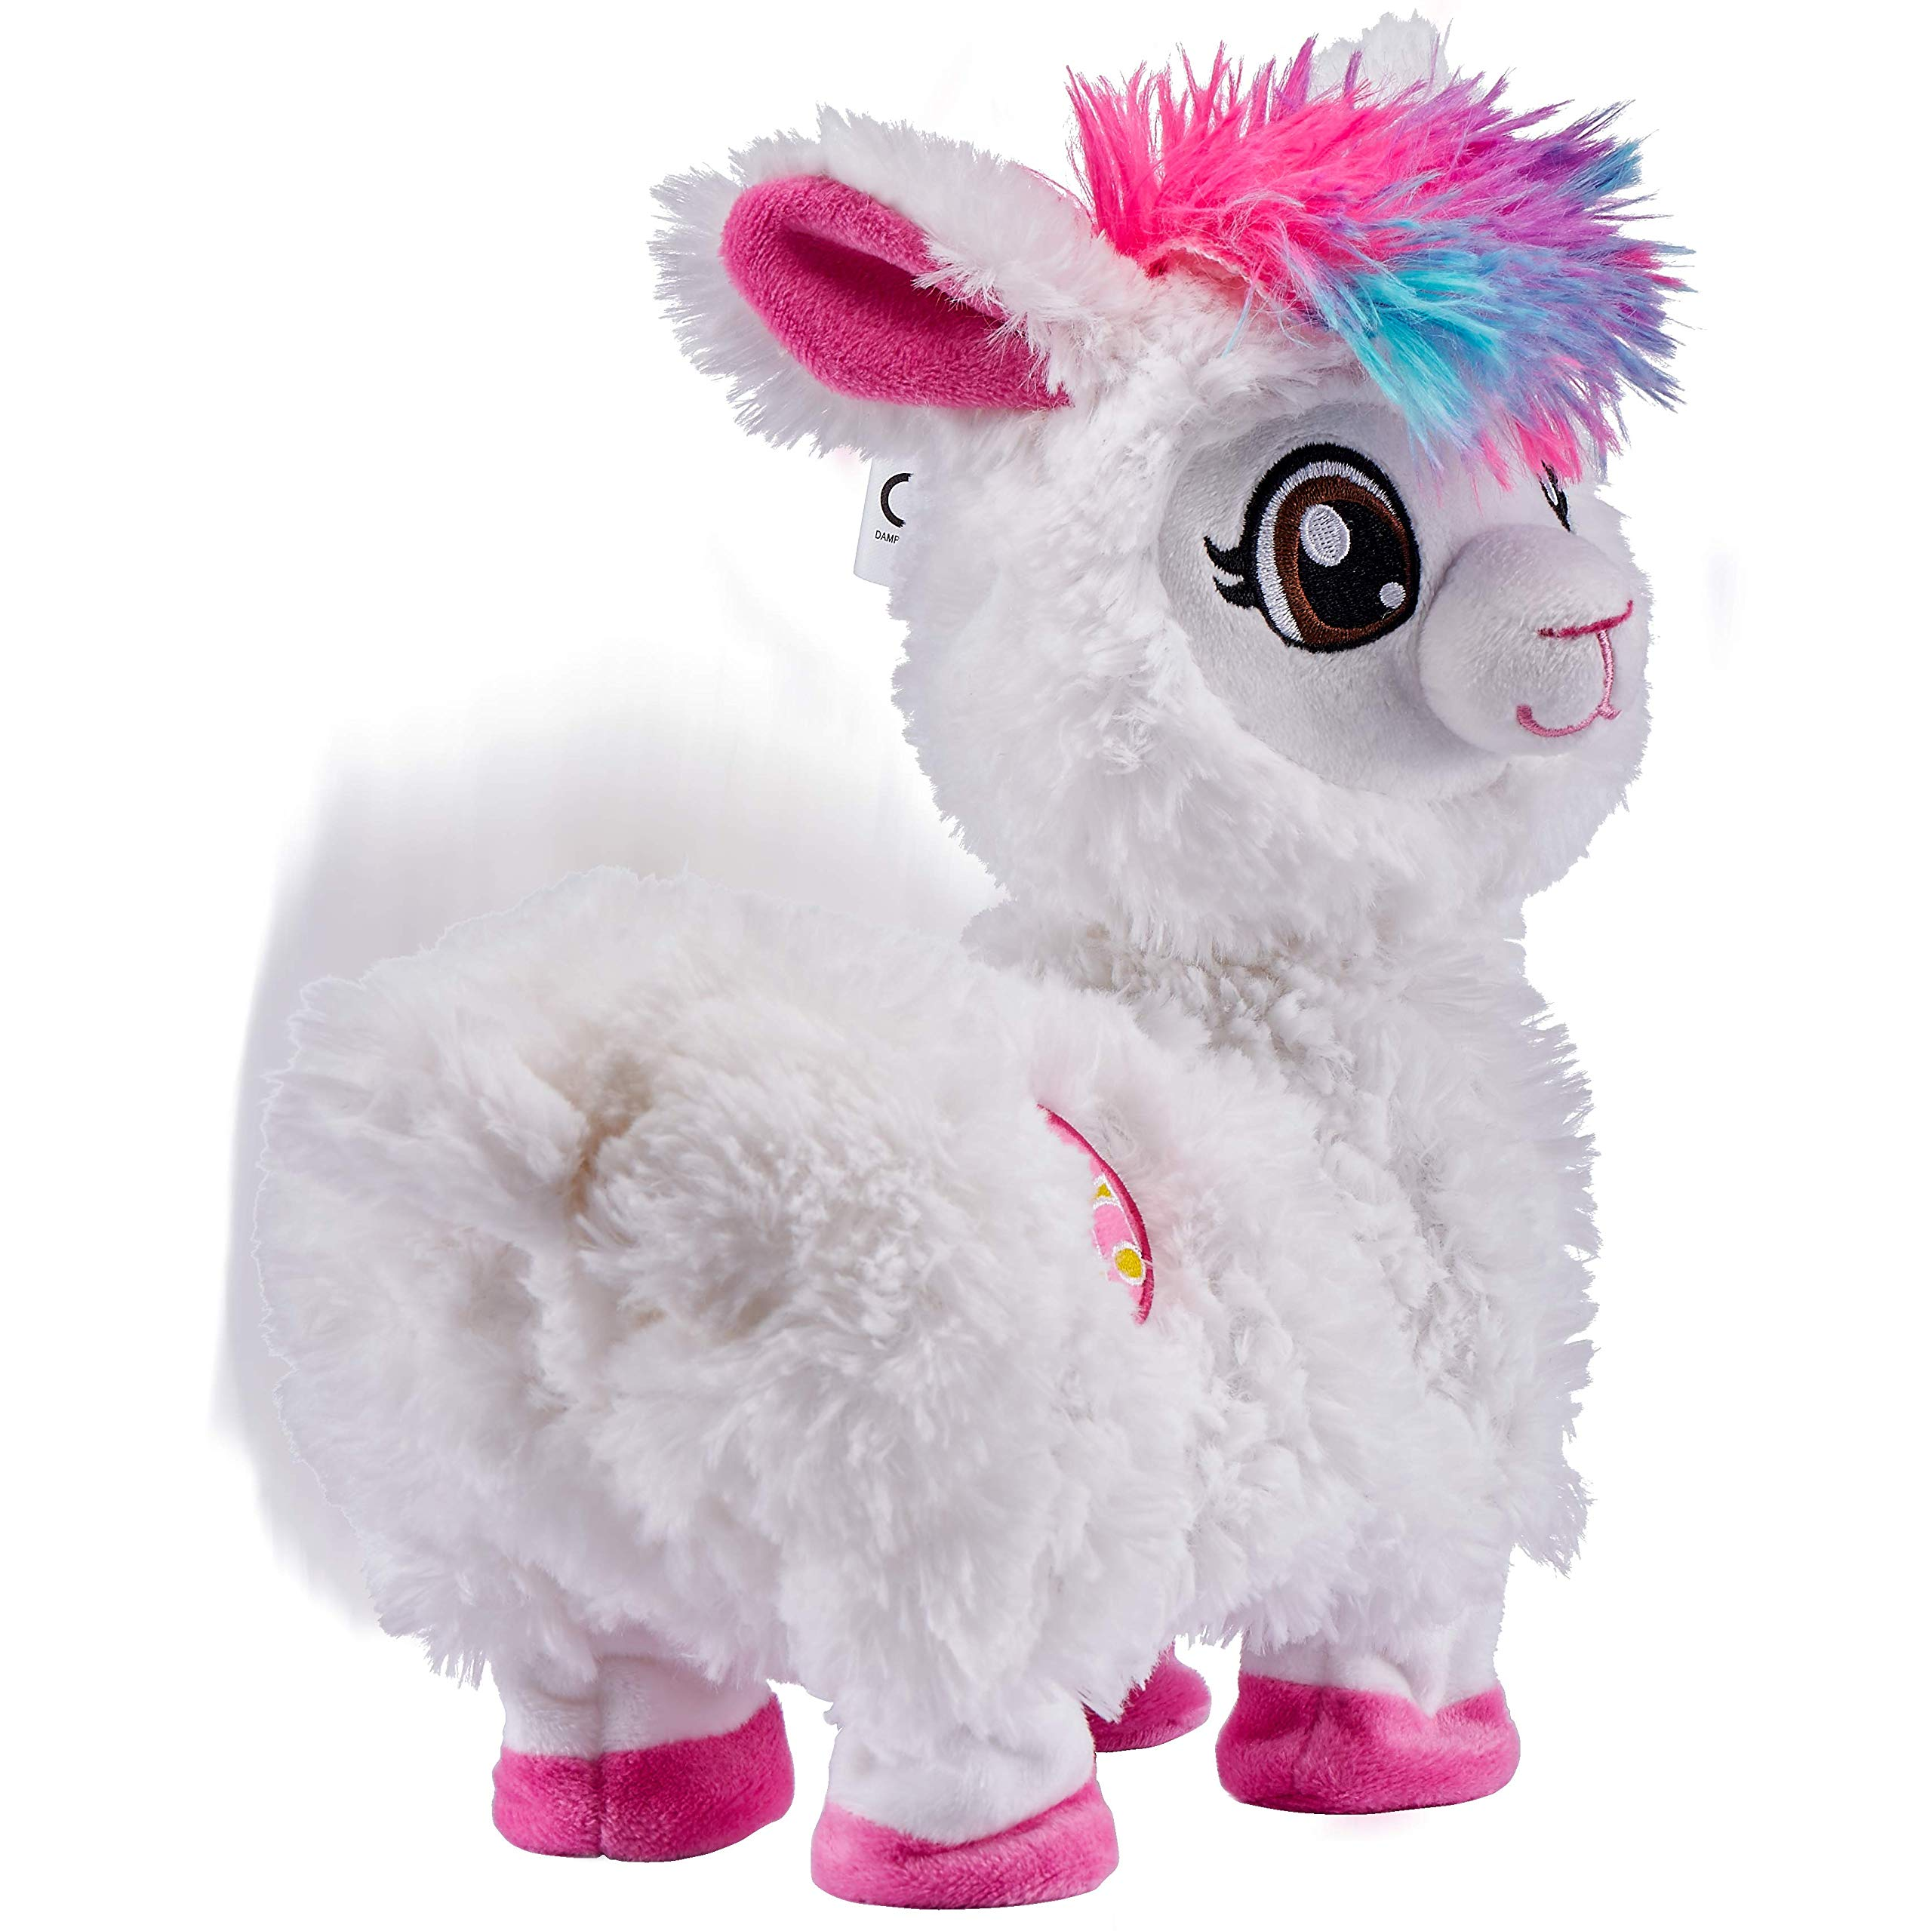 Pets Alive Boppi The Booty Shakin Llama Battery-Powered Dancing Robotic Toy by Zuru by Pets Alive (Image #8)